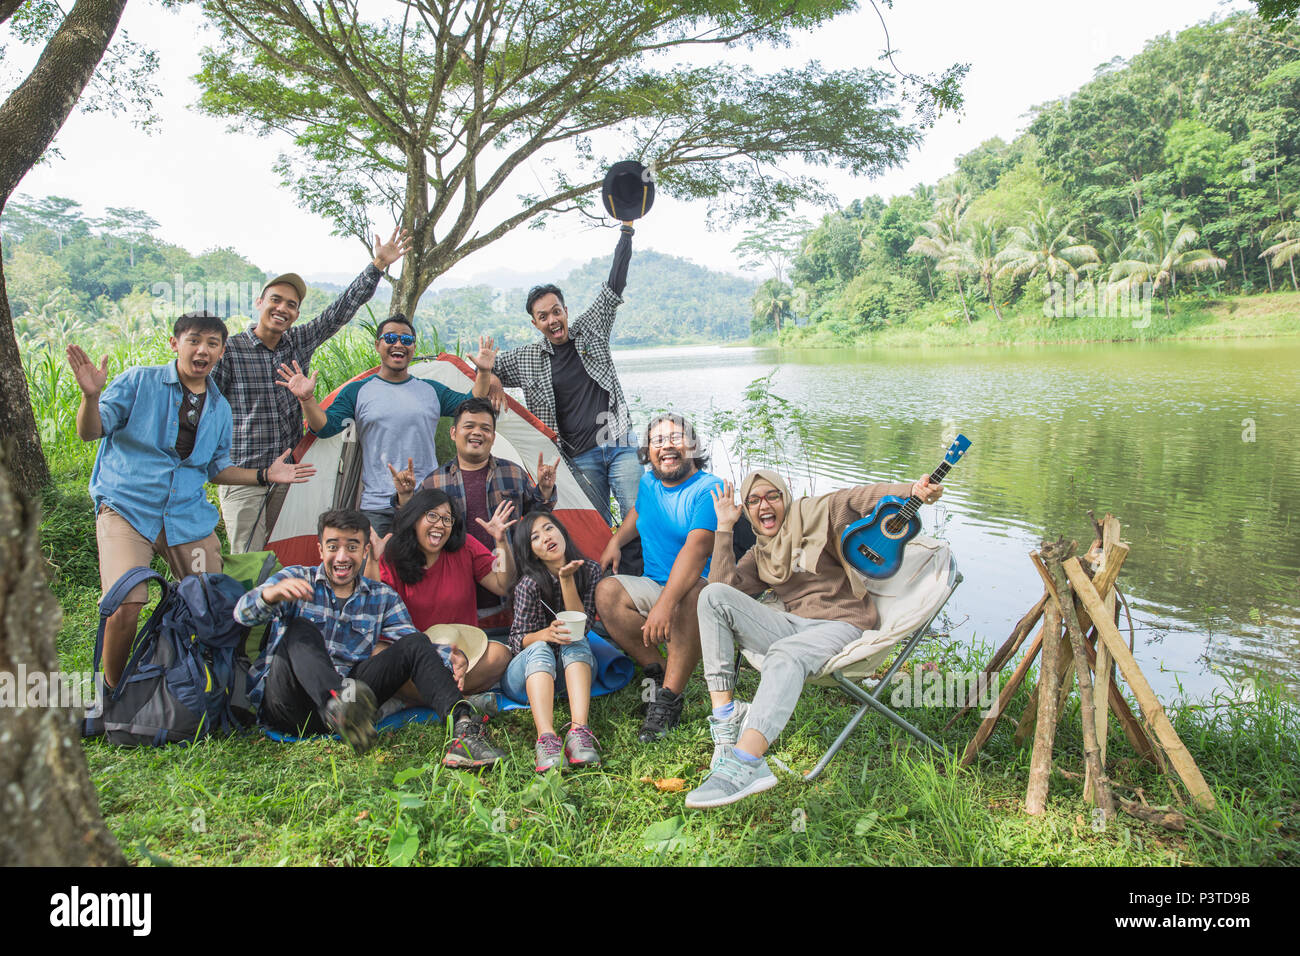 people enjoying their holiday camping together - Stock Image